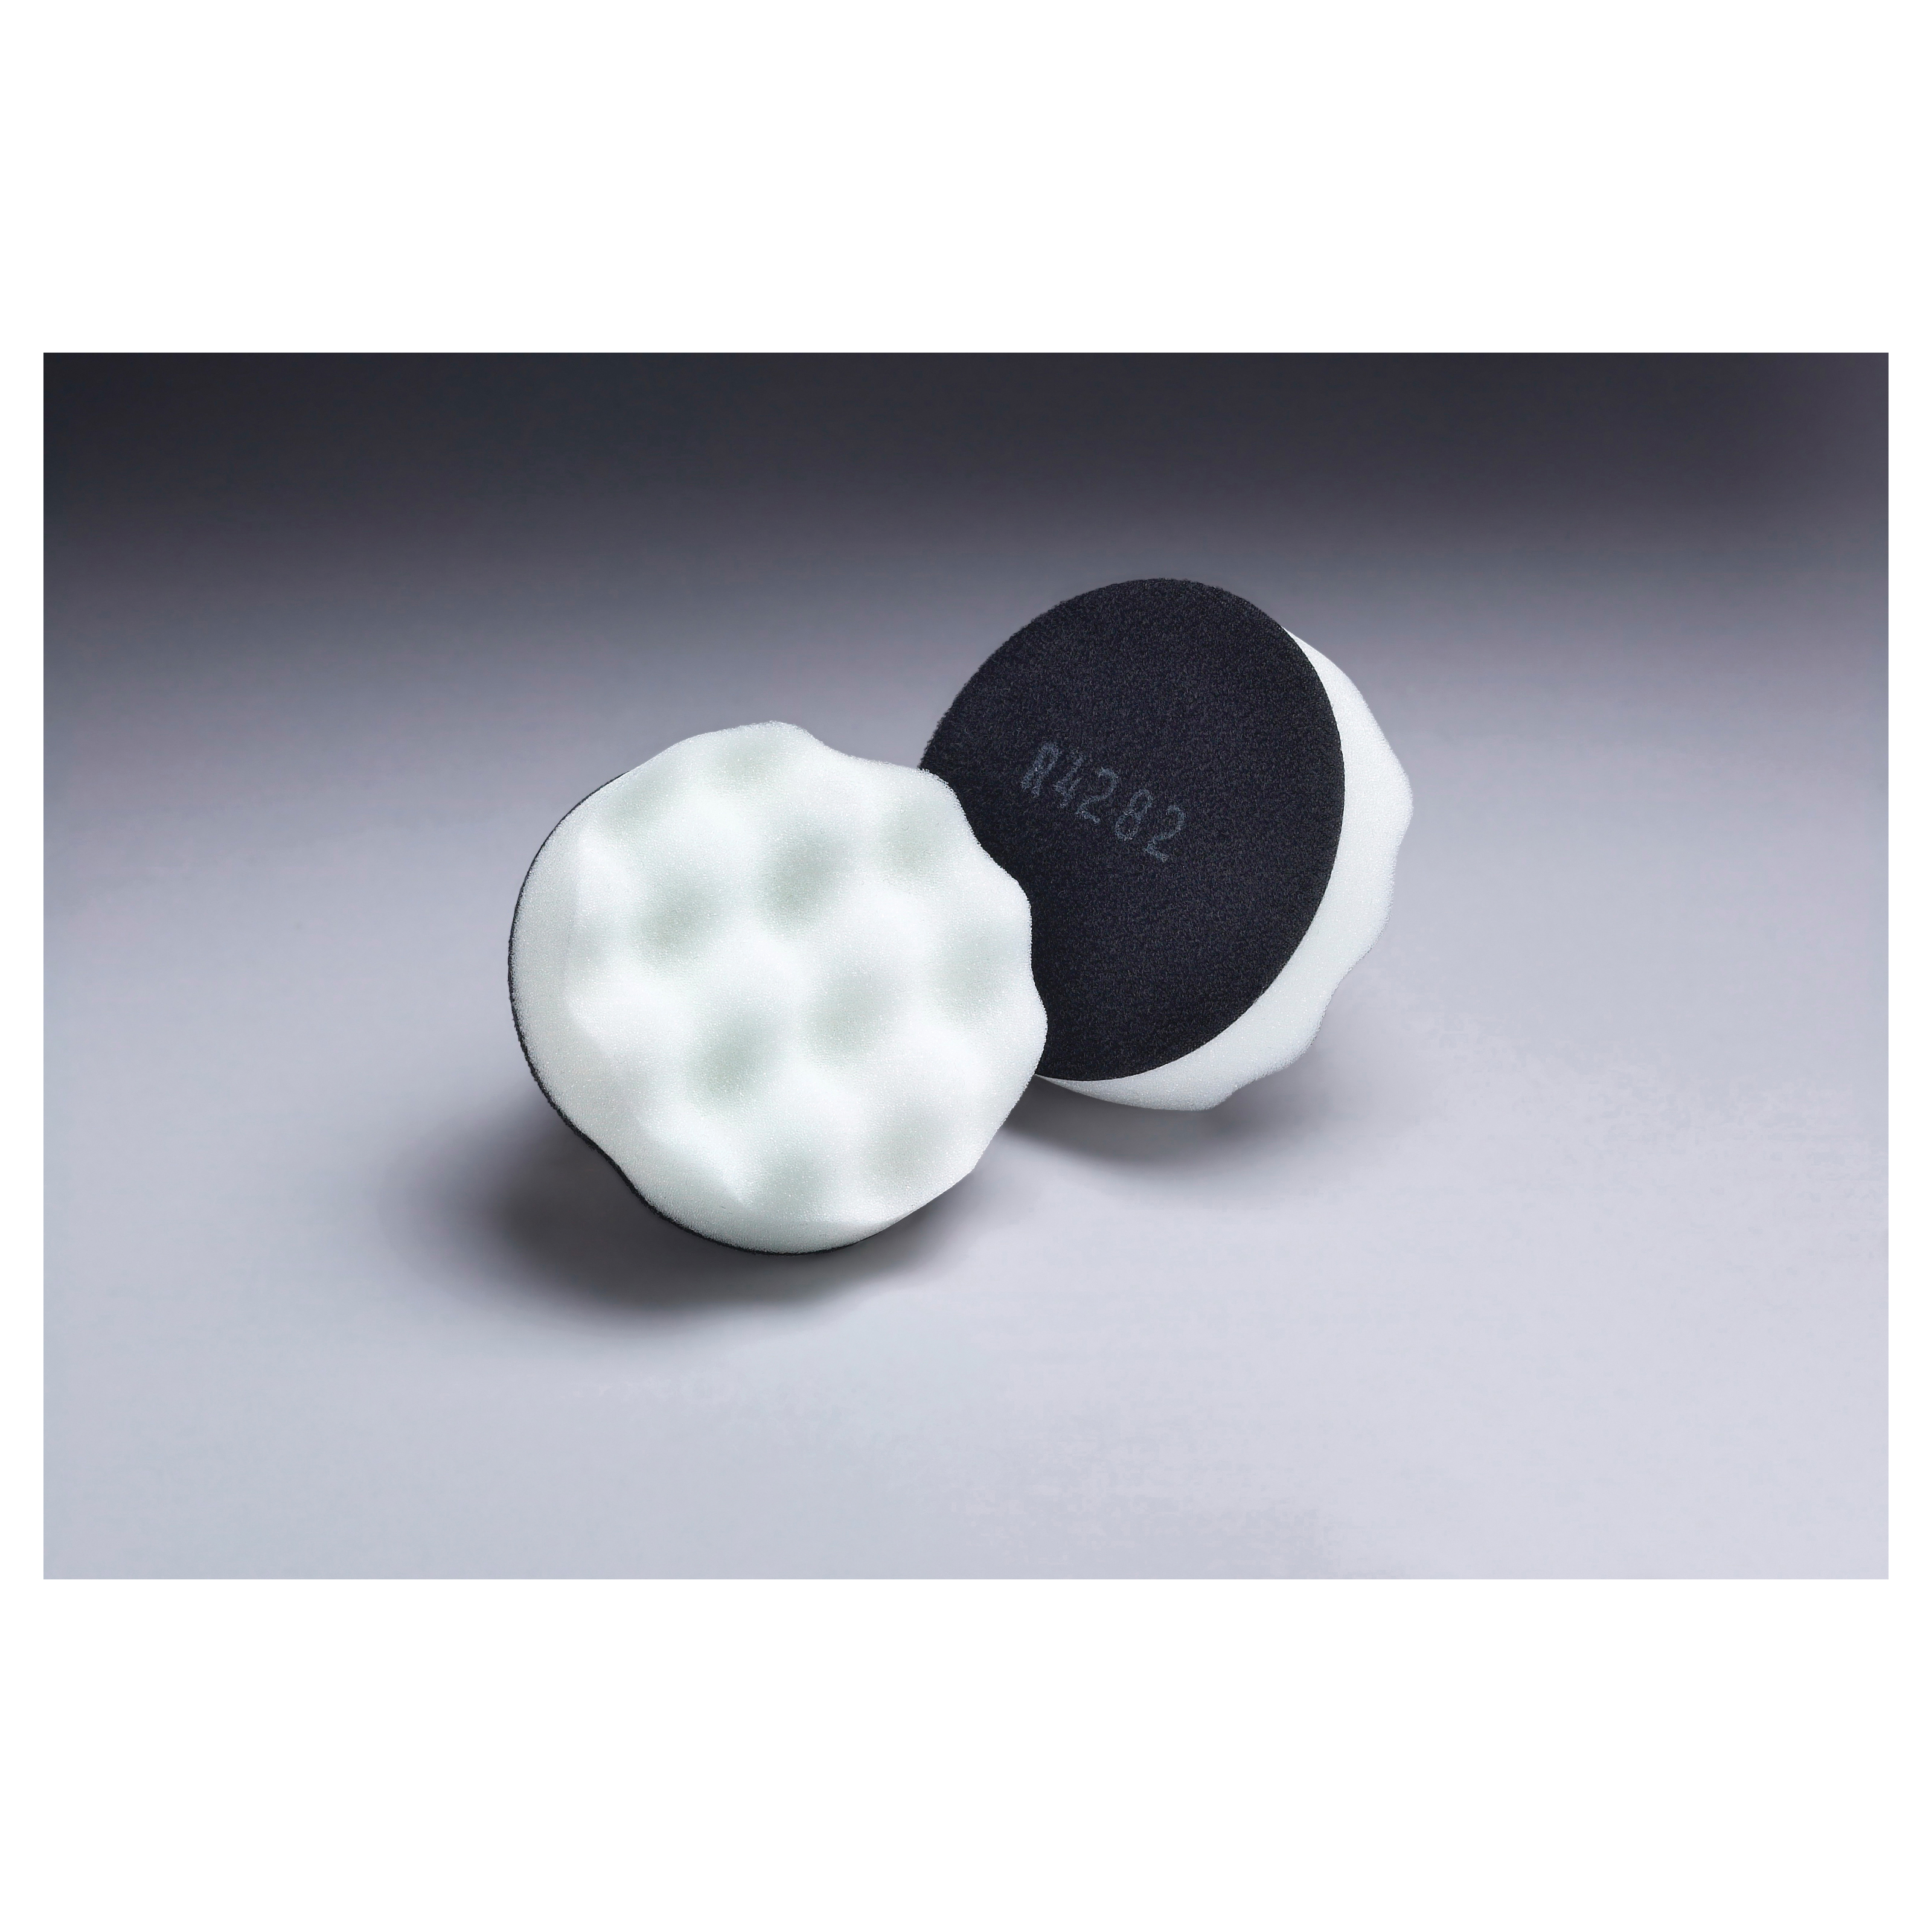 Finesse-it™ 051135-92500 01912 Regular Buffing Pad, 5-1/4 in OAD, Hook and Loop Attachment, Polyurethane Foam Pad